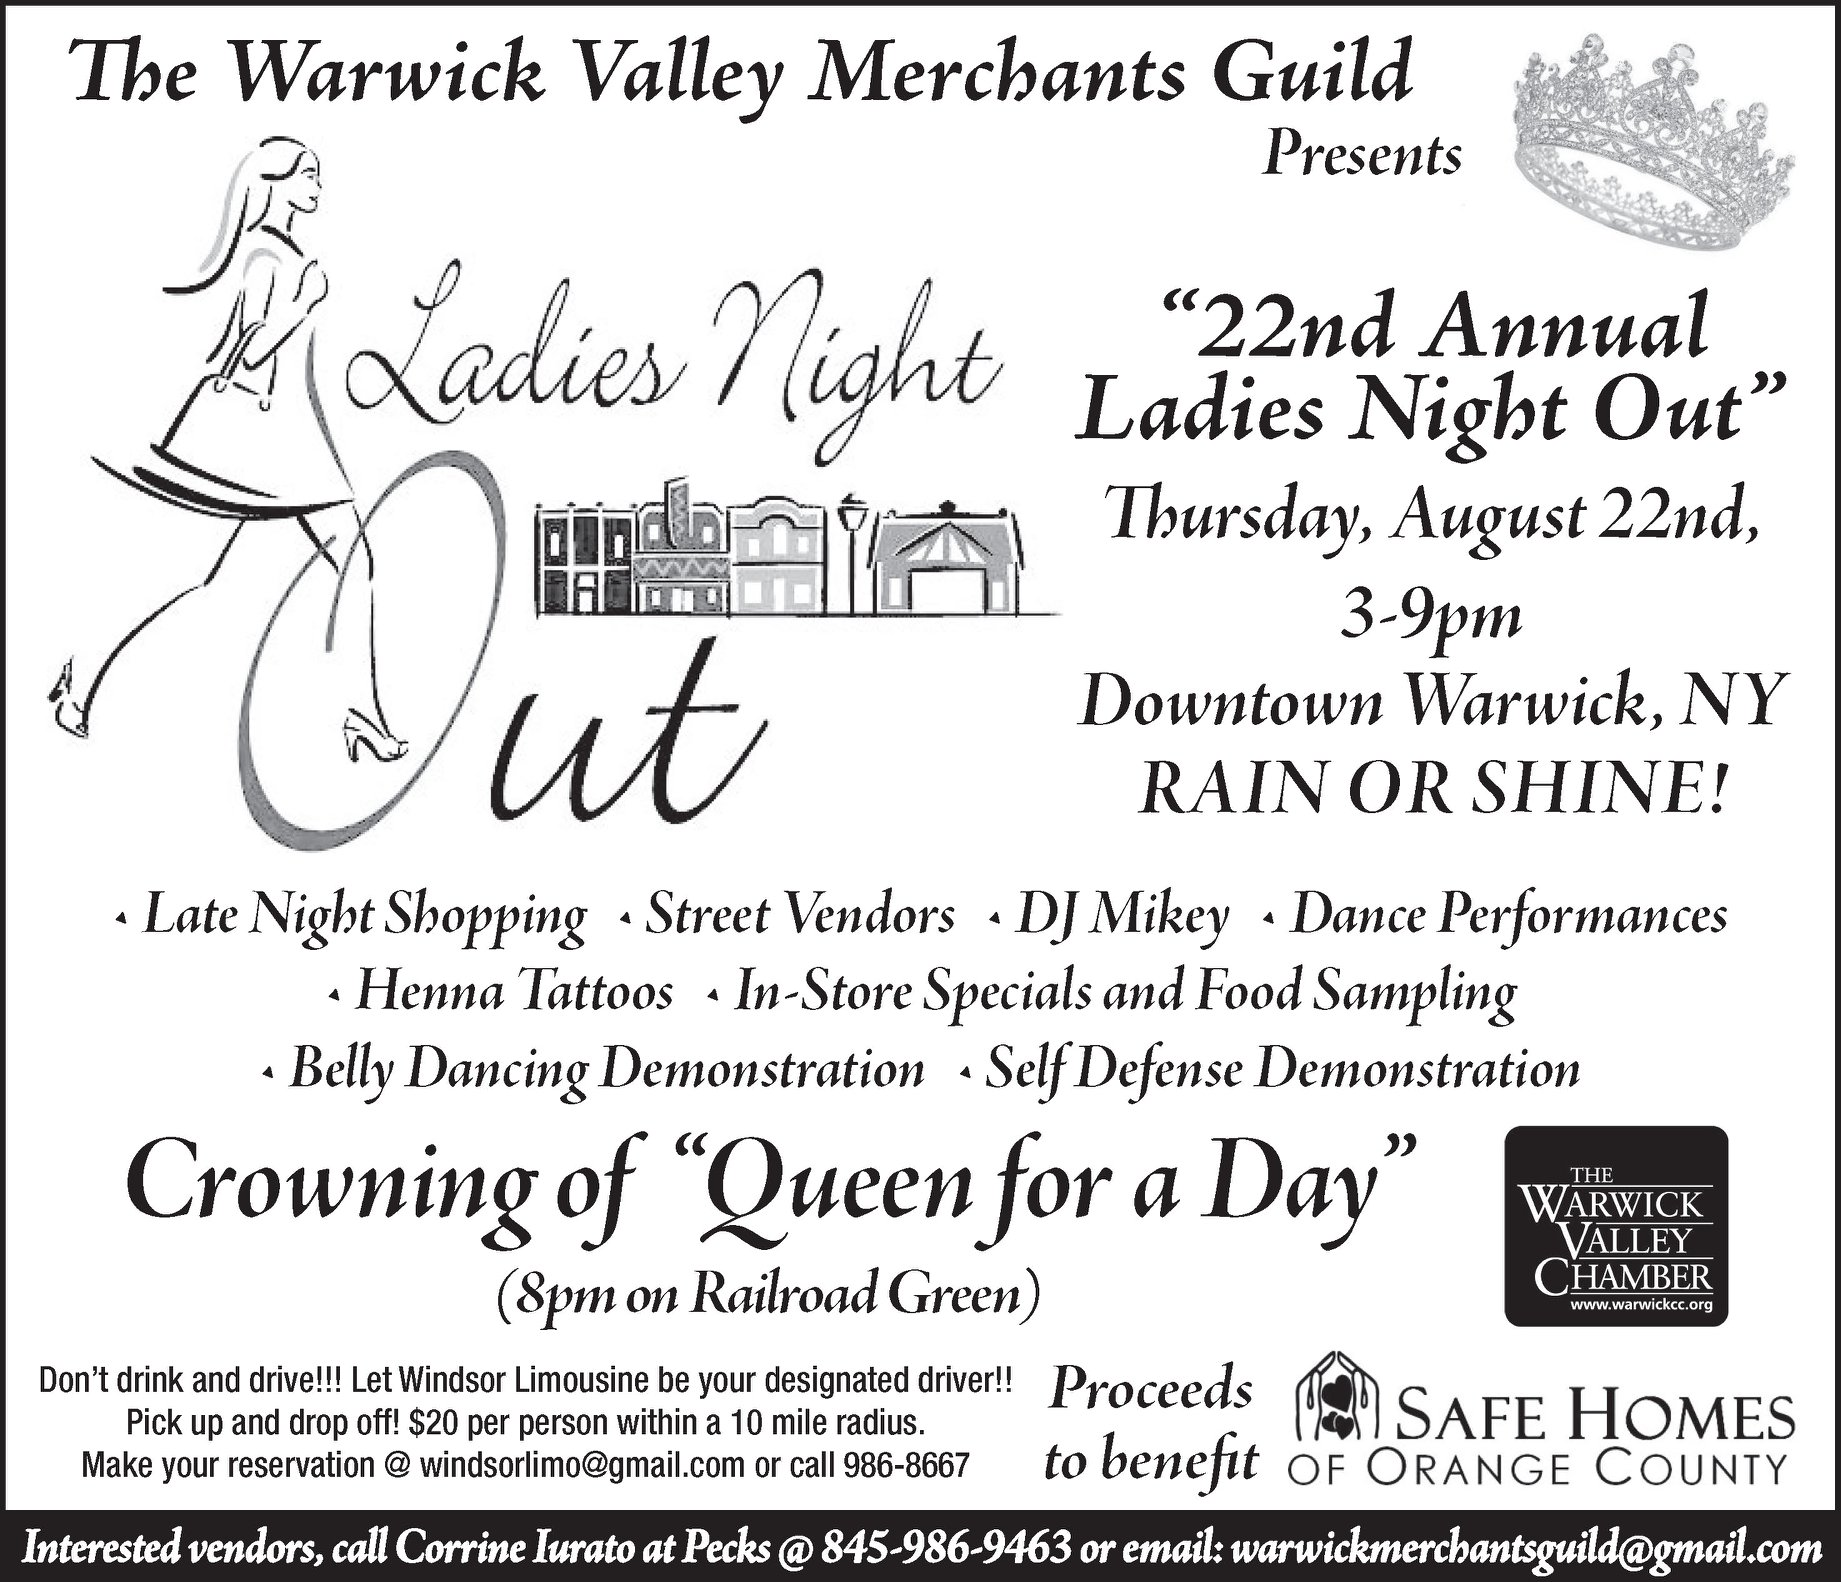 22nd Annual 'Ladies Night Out' in Warwick